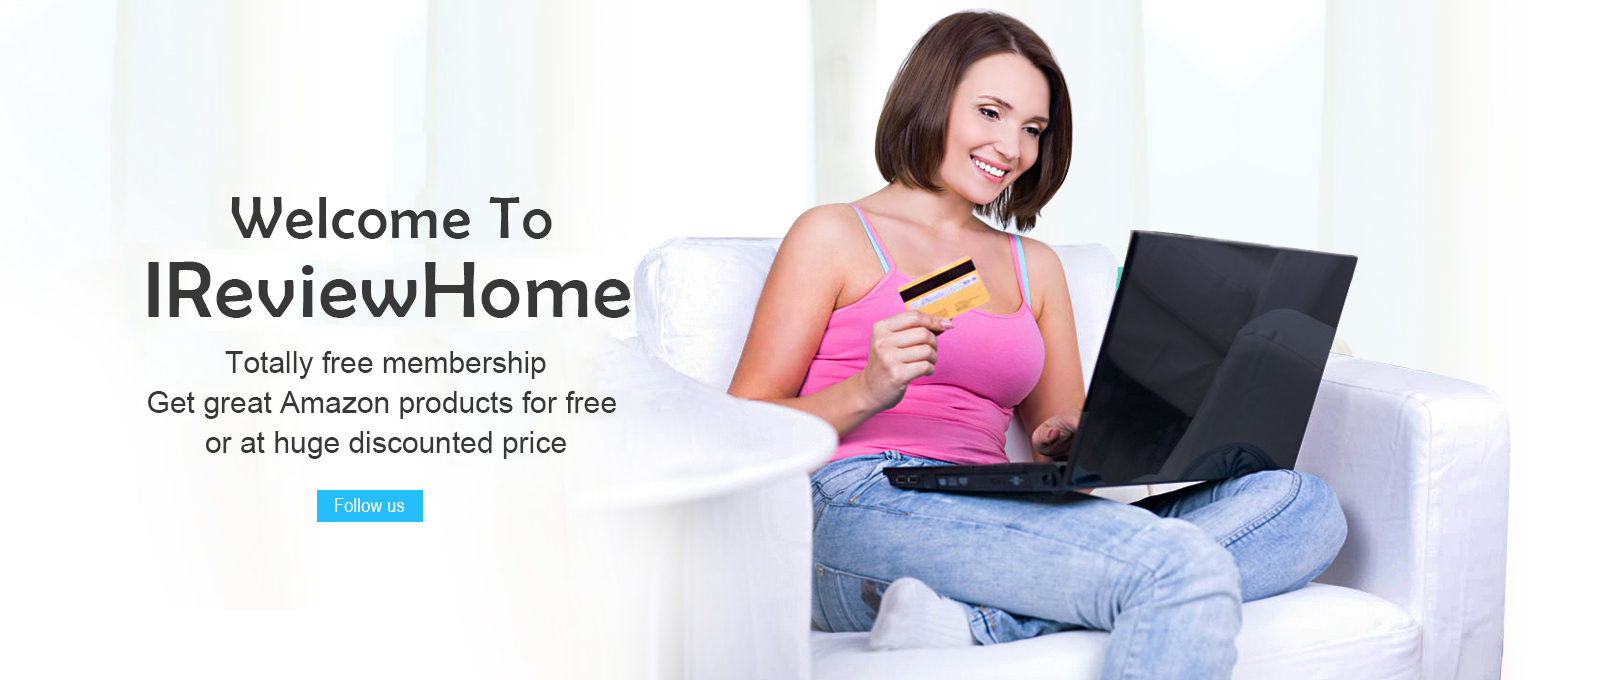 IReviewHome Review Trader